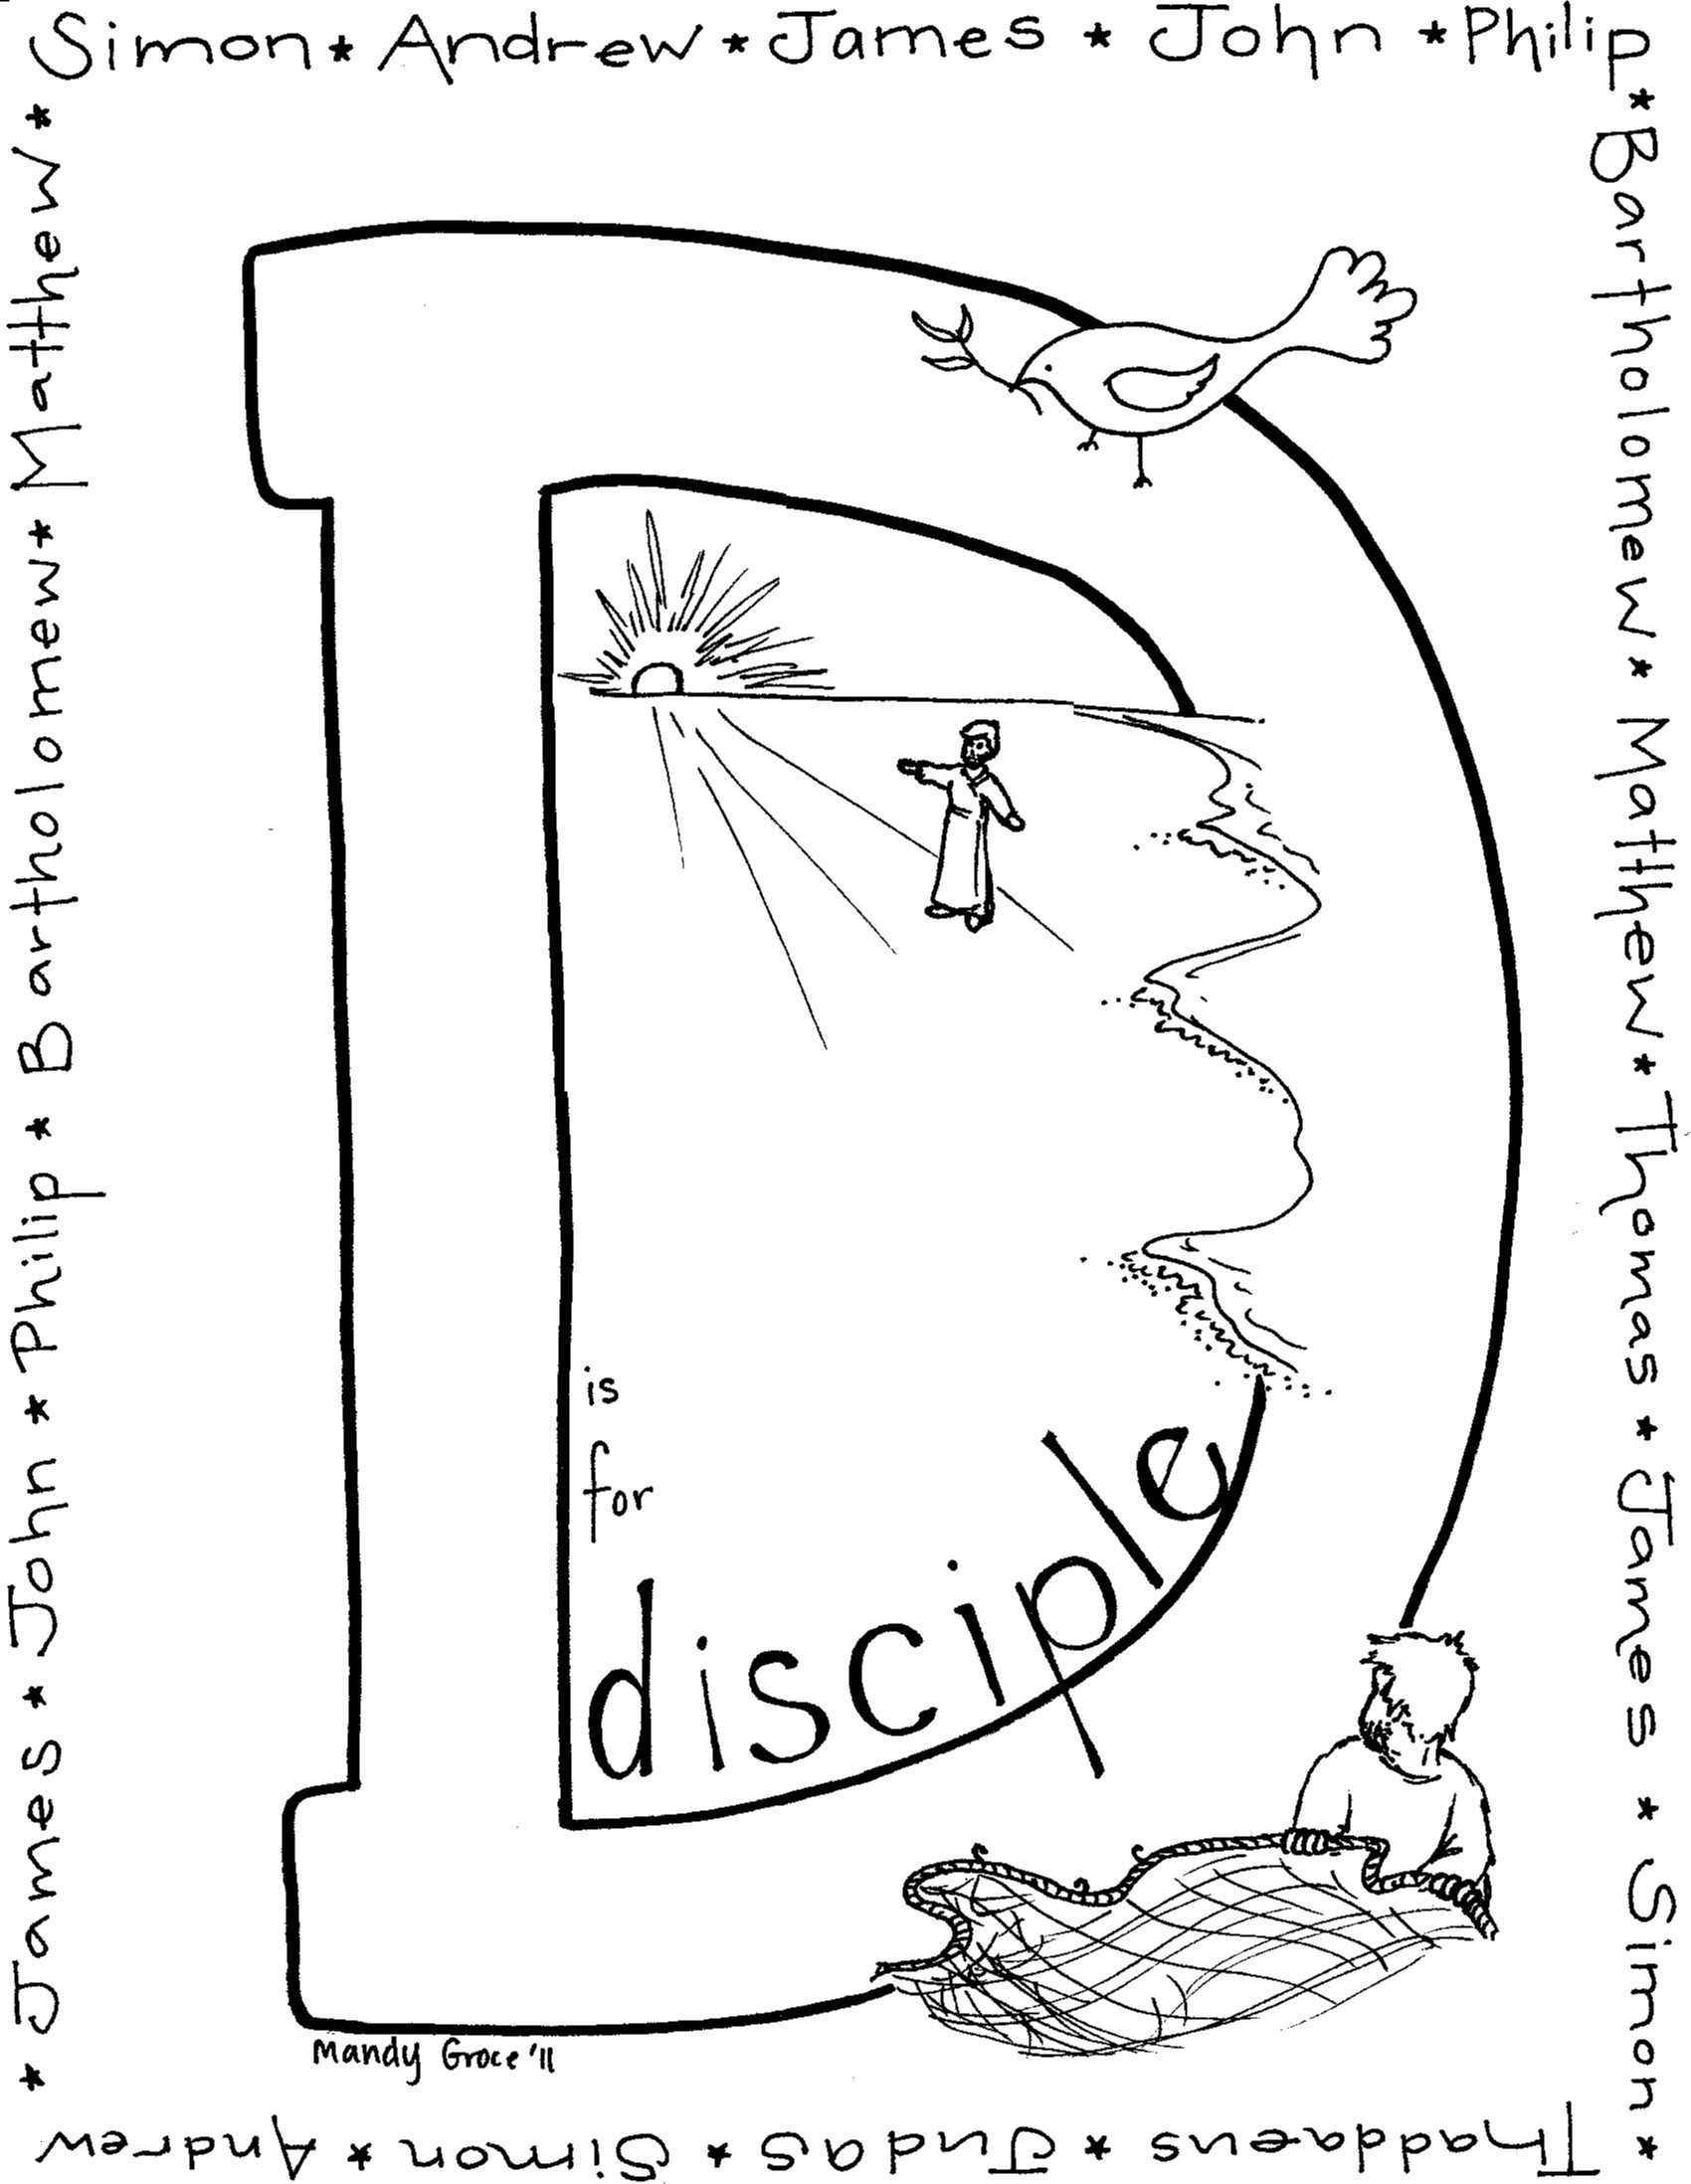 Jesus Calling His Disciples Coloring Pages  Printable 11d - To print for your project